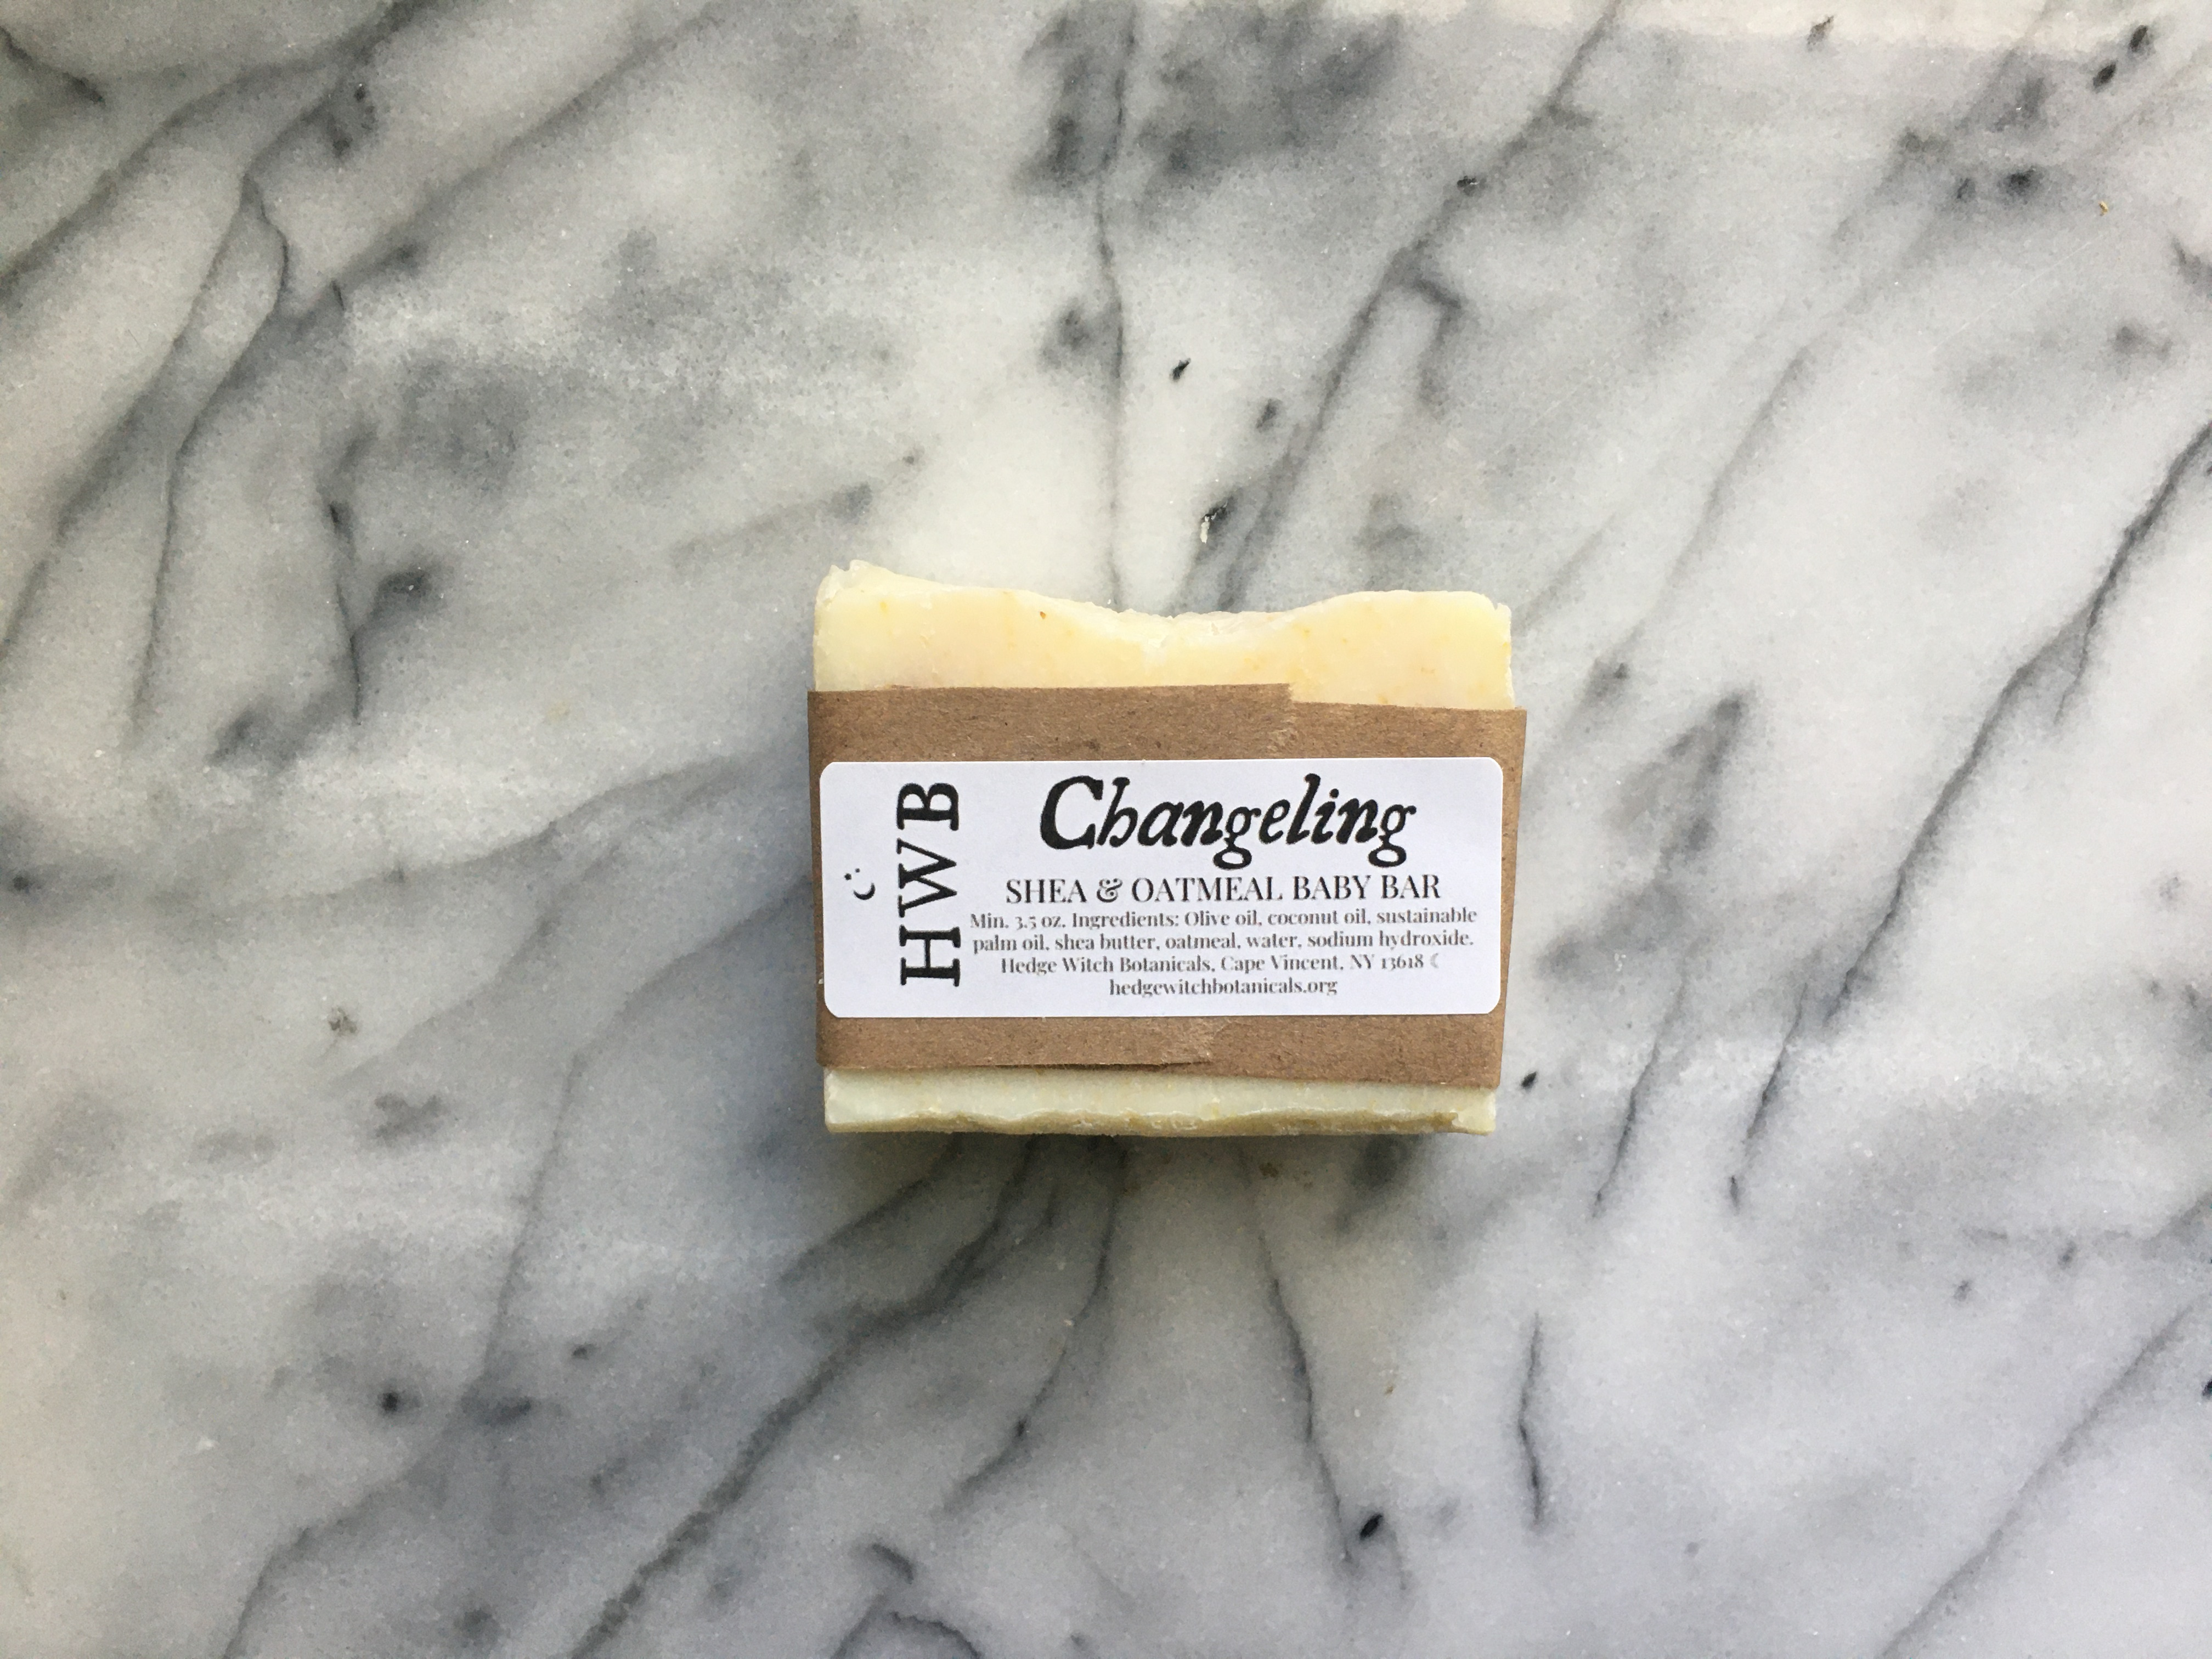 Changeling Unscented Baby Bar with Oatmeal & Shea Butter